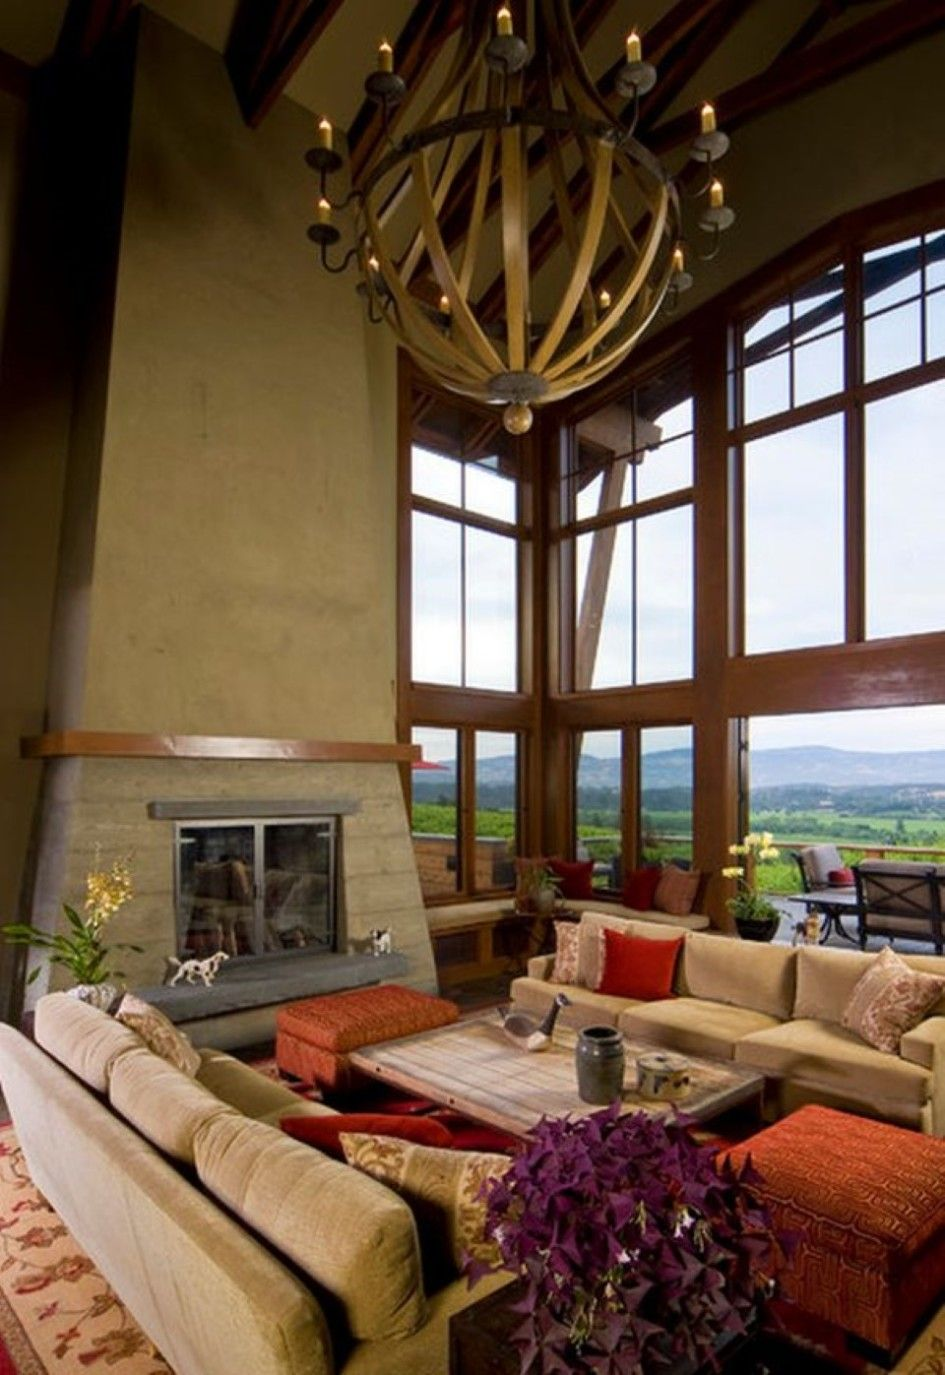 High Ceiling Rooms And Decorating Ideas For Them: Interior, Divine High Vaulted Ceiling Living Room With Cool Wooden Beam Chandelier Large Gl